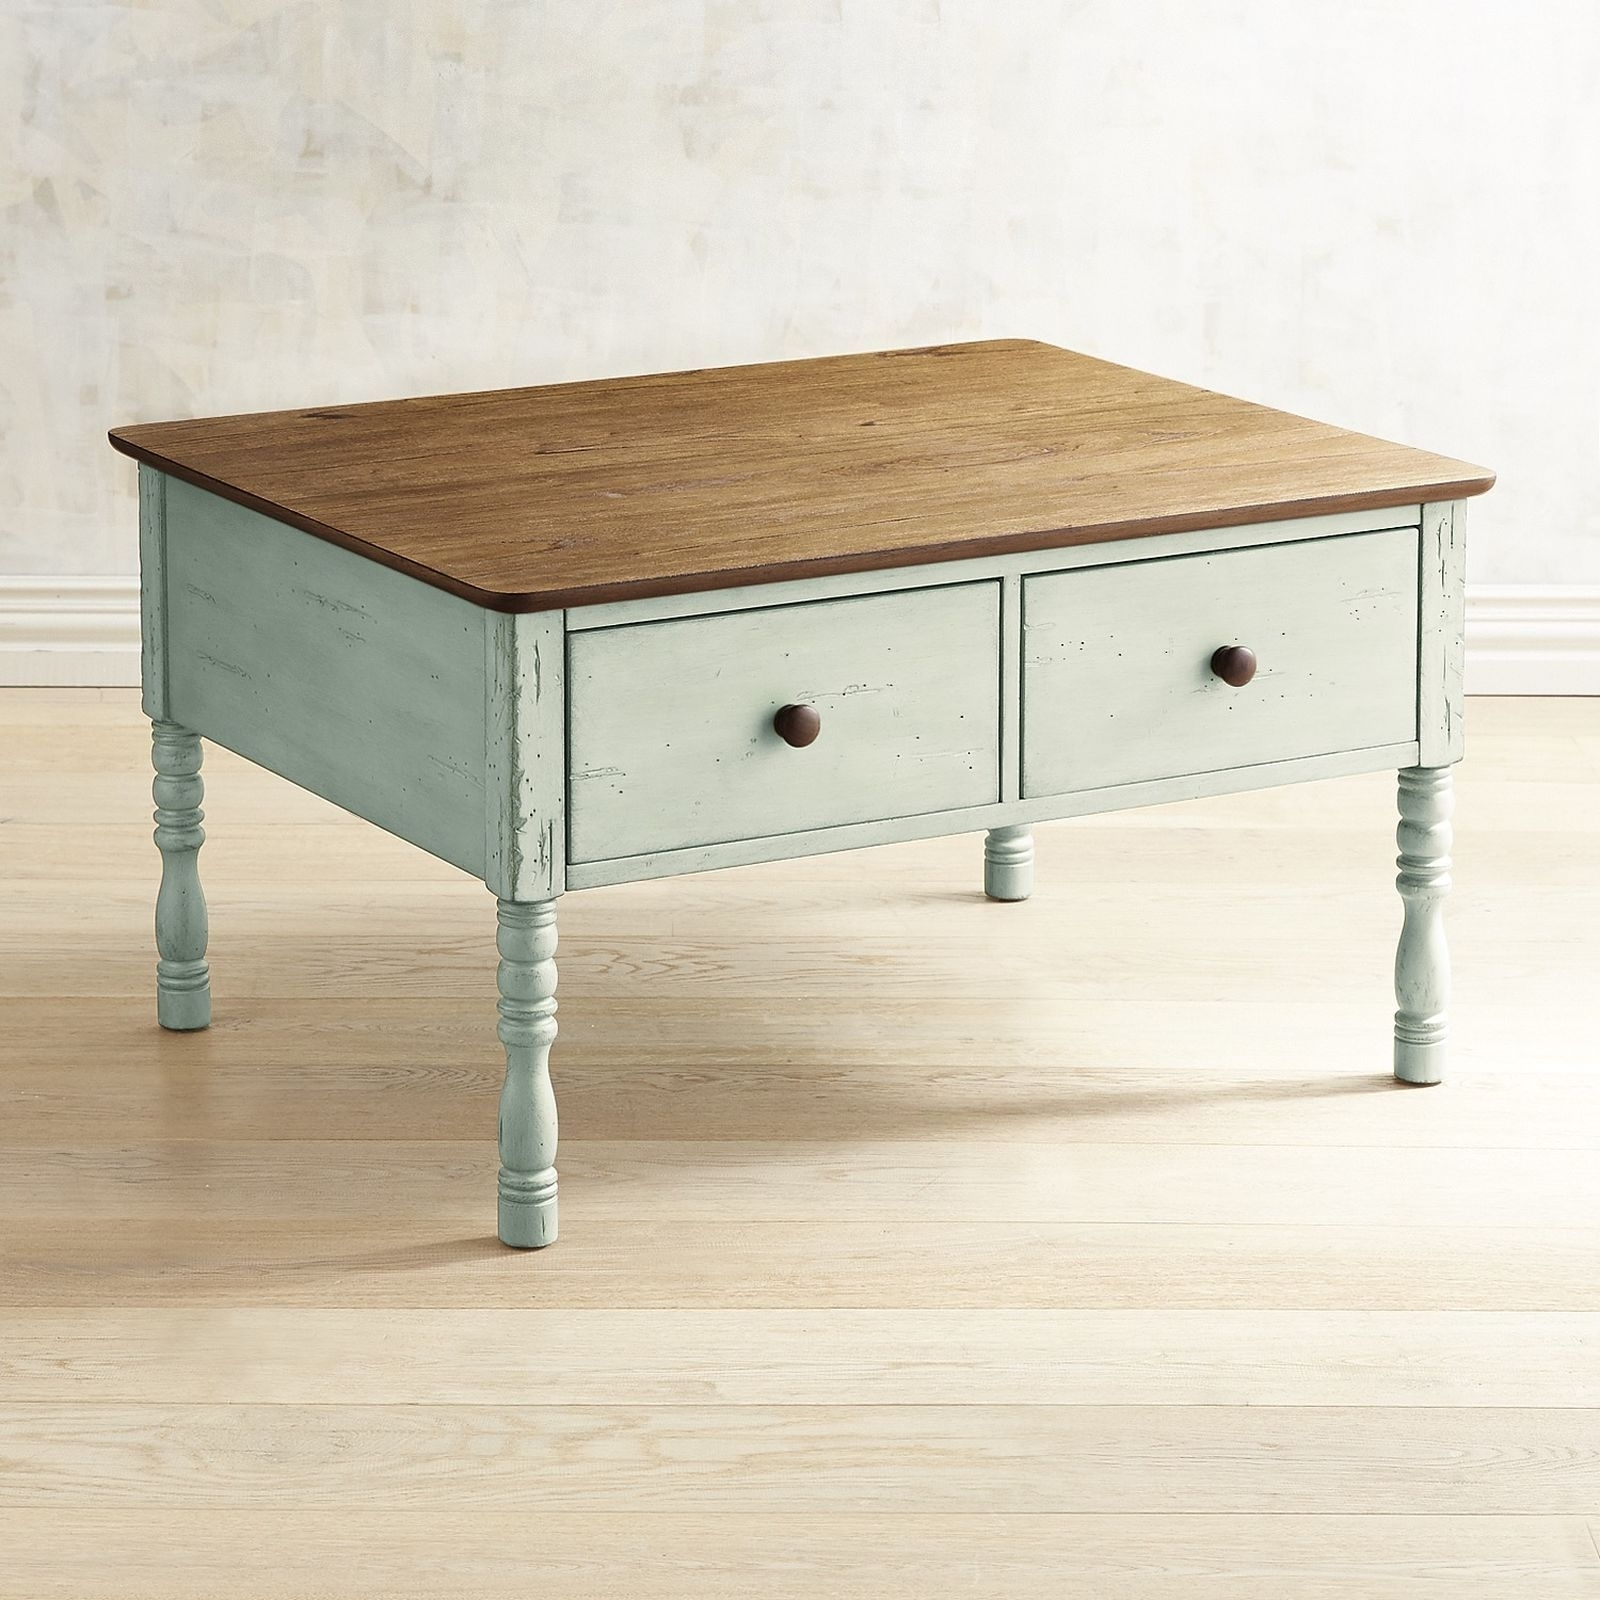 Pier 1 Imports Haven Soft Green Coffee Table | Green Coffee Tables pertaining to Haven Coffee Tables (Image 28 of 30)